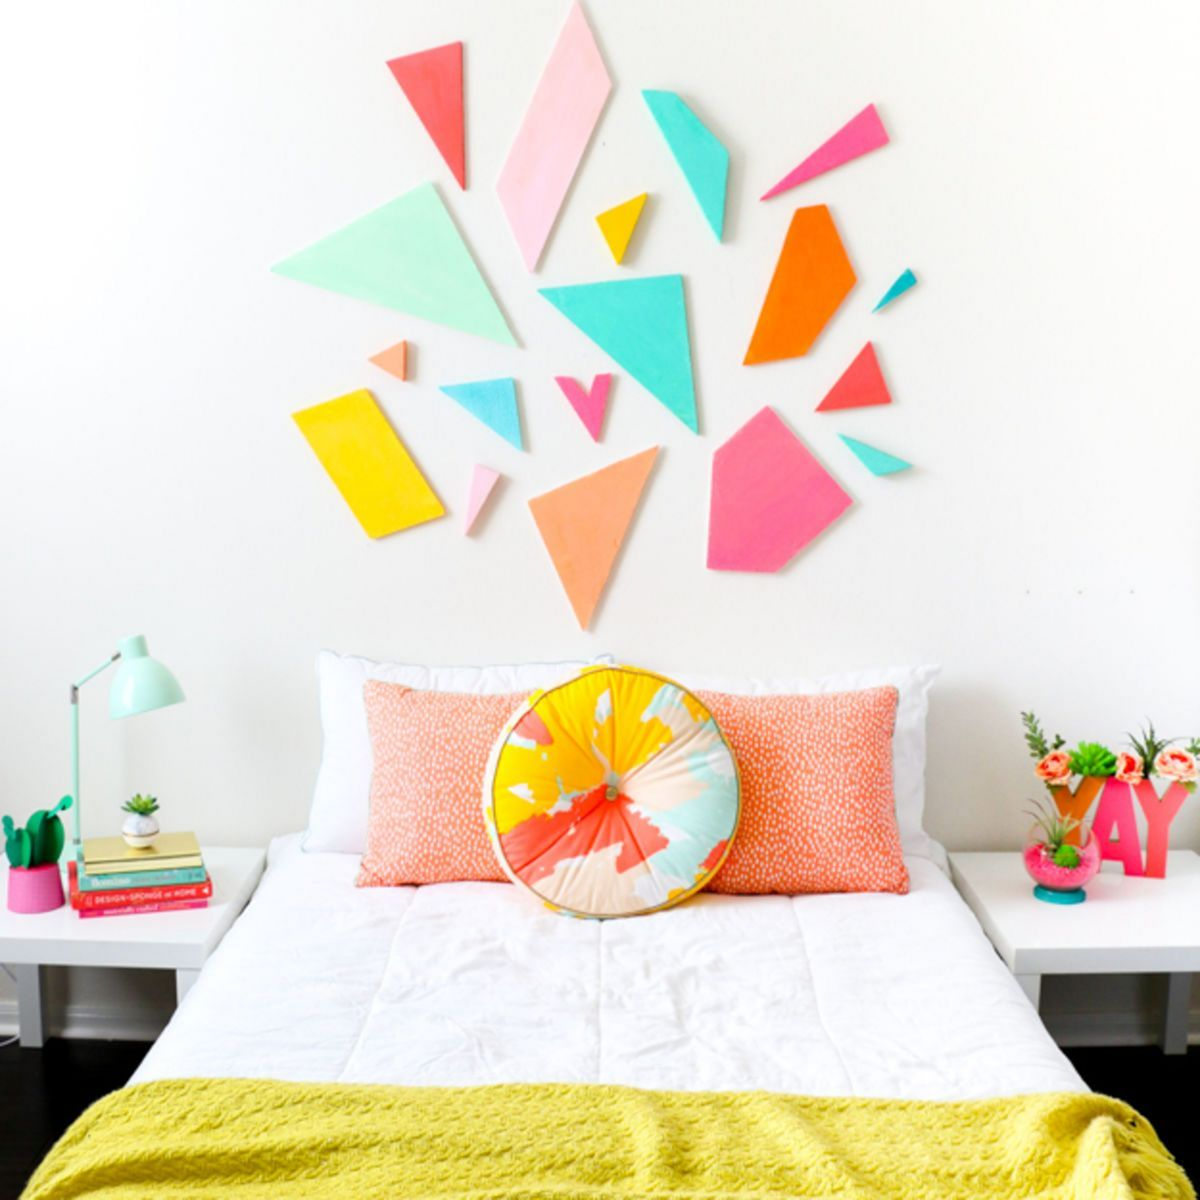 Colorful geometric headboard DIY Room Decoration Ideas Where Teens Can Do It In A Short Time